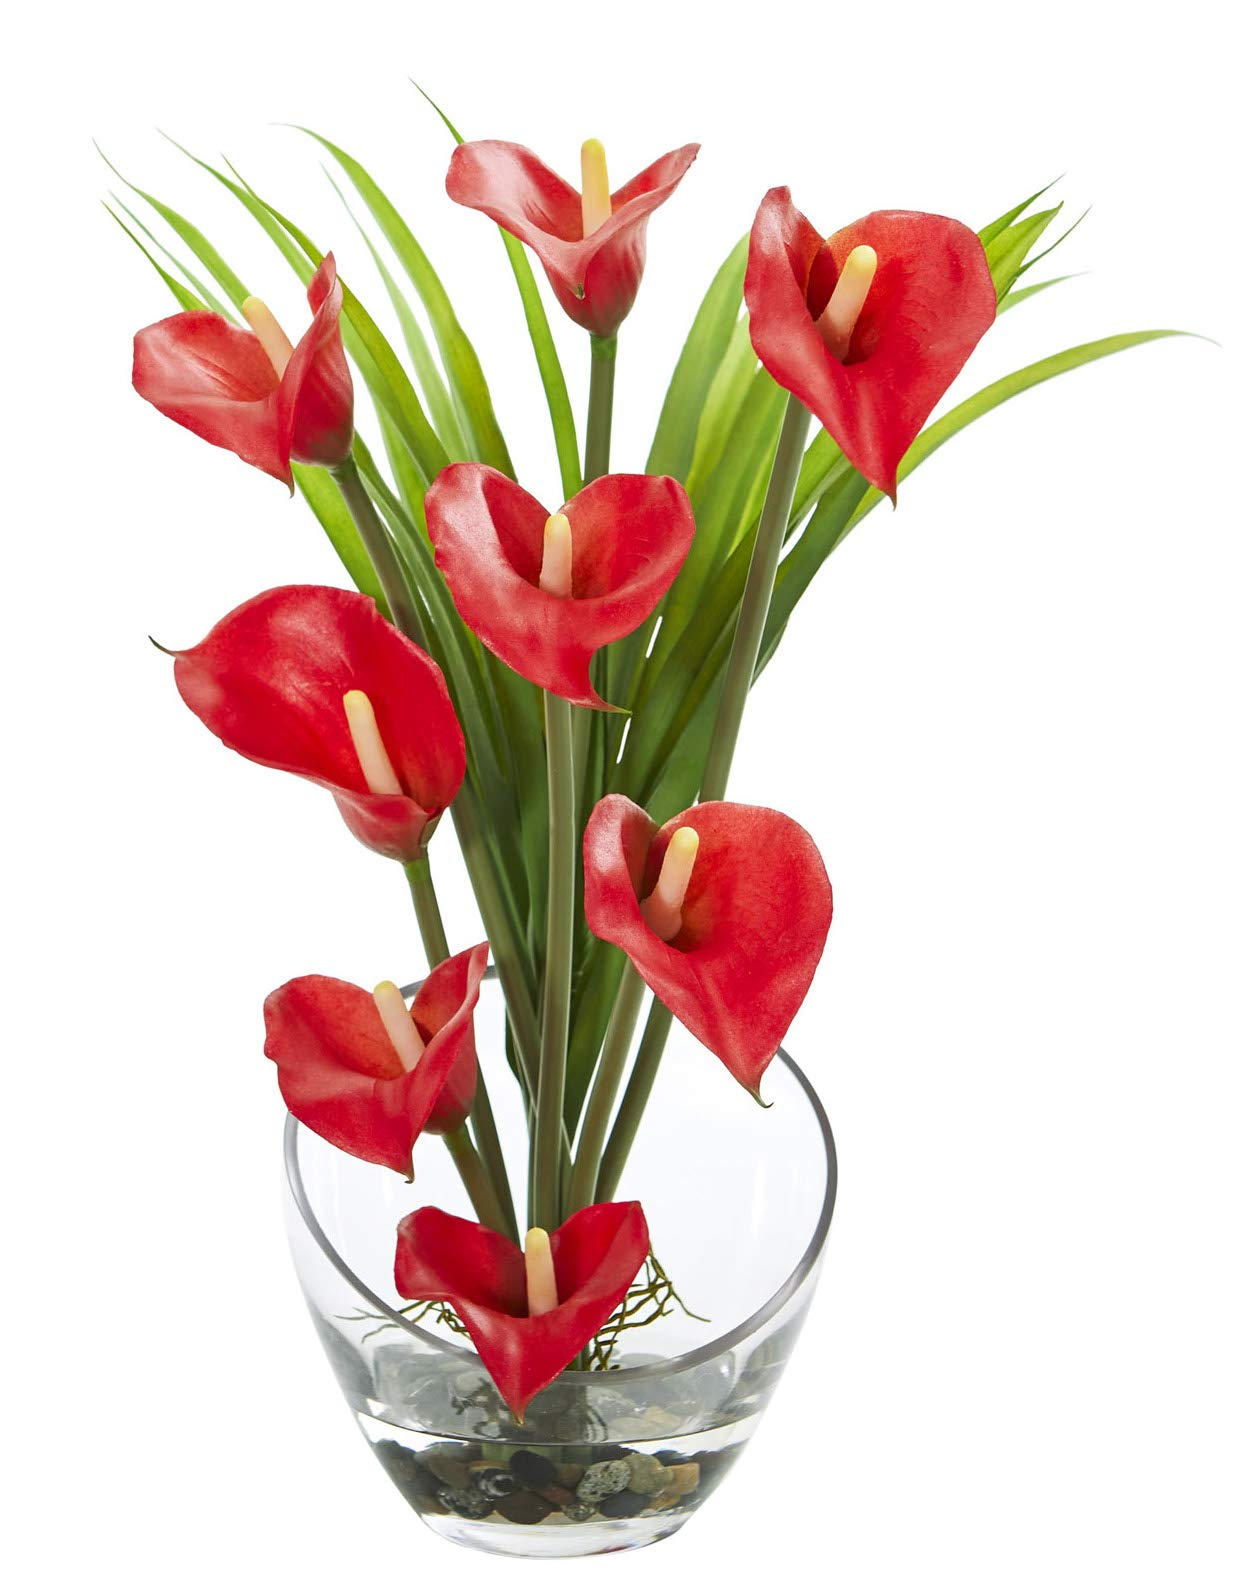 Artificial Flowers -15.5 Inch Red Calla Lily and Grass in Vase Silk Flowers by Artificial Plantz